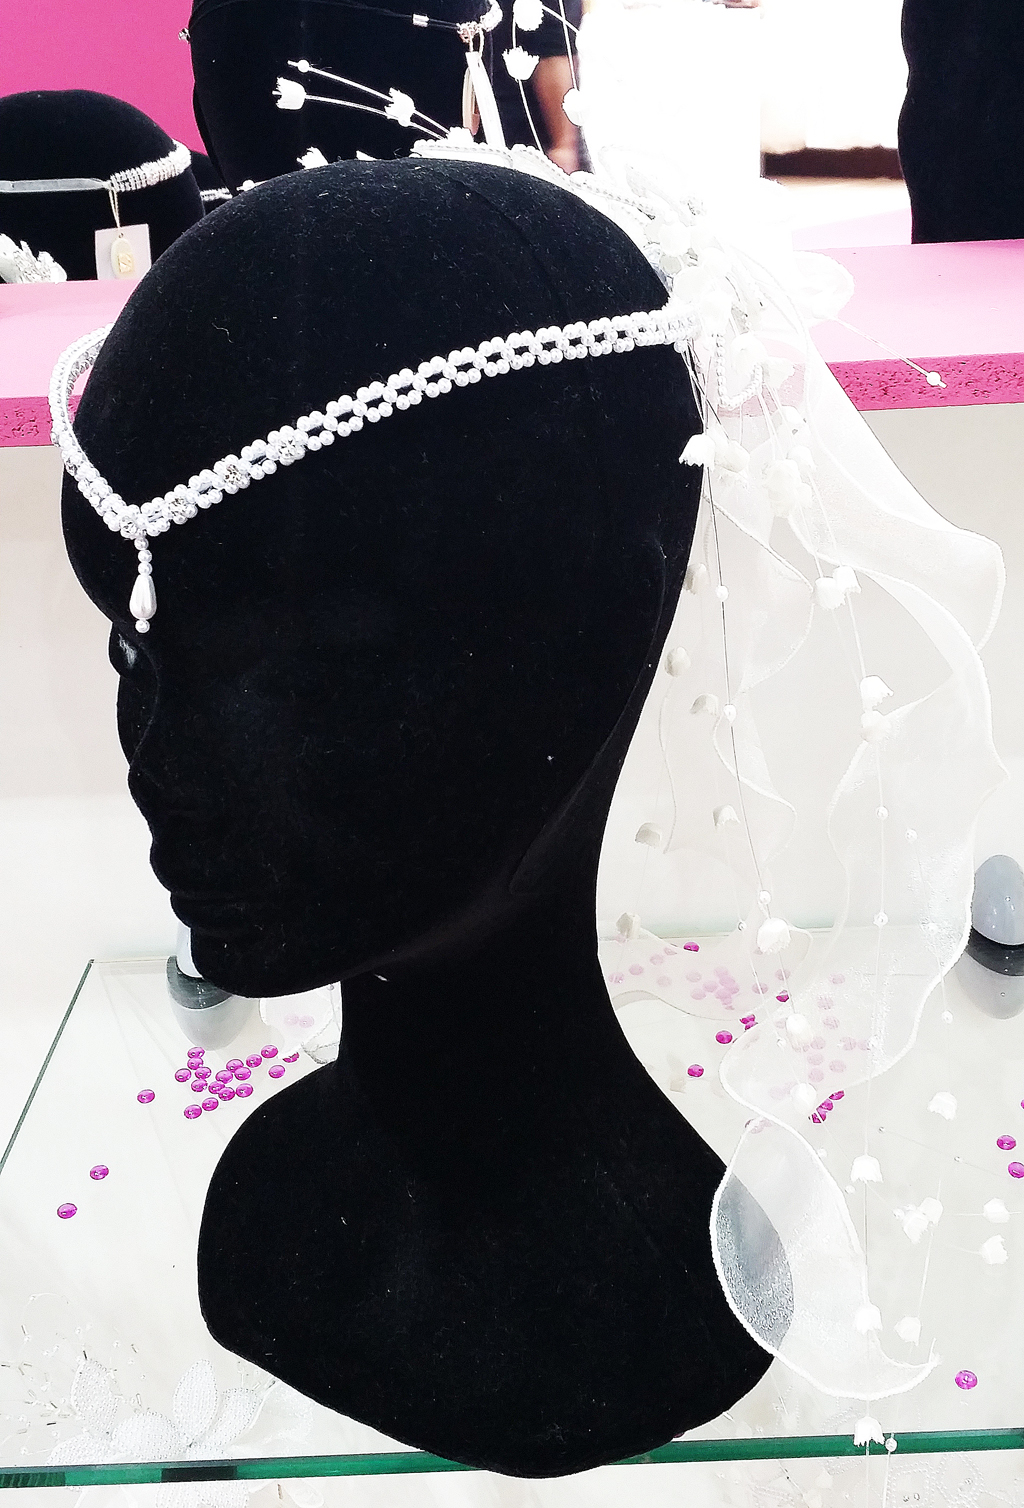 Castle-Key-Destination-Weddings-Specialist-Loire-Valley-France-Paris-Bridal-Fair-April-2015-Hair-Accessories